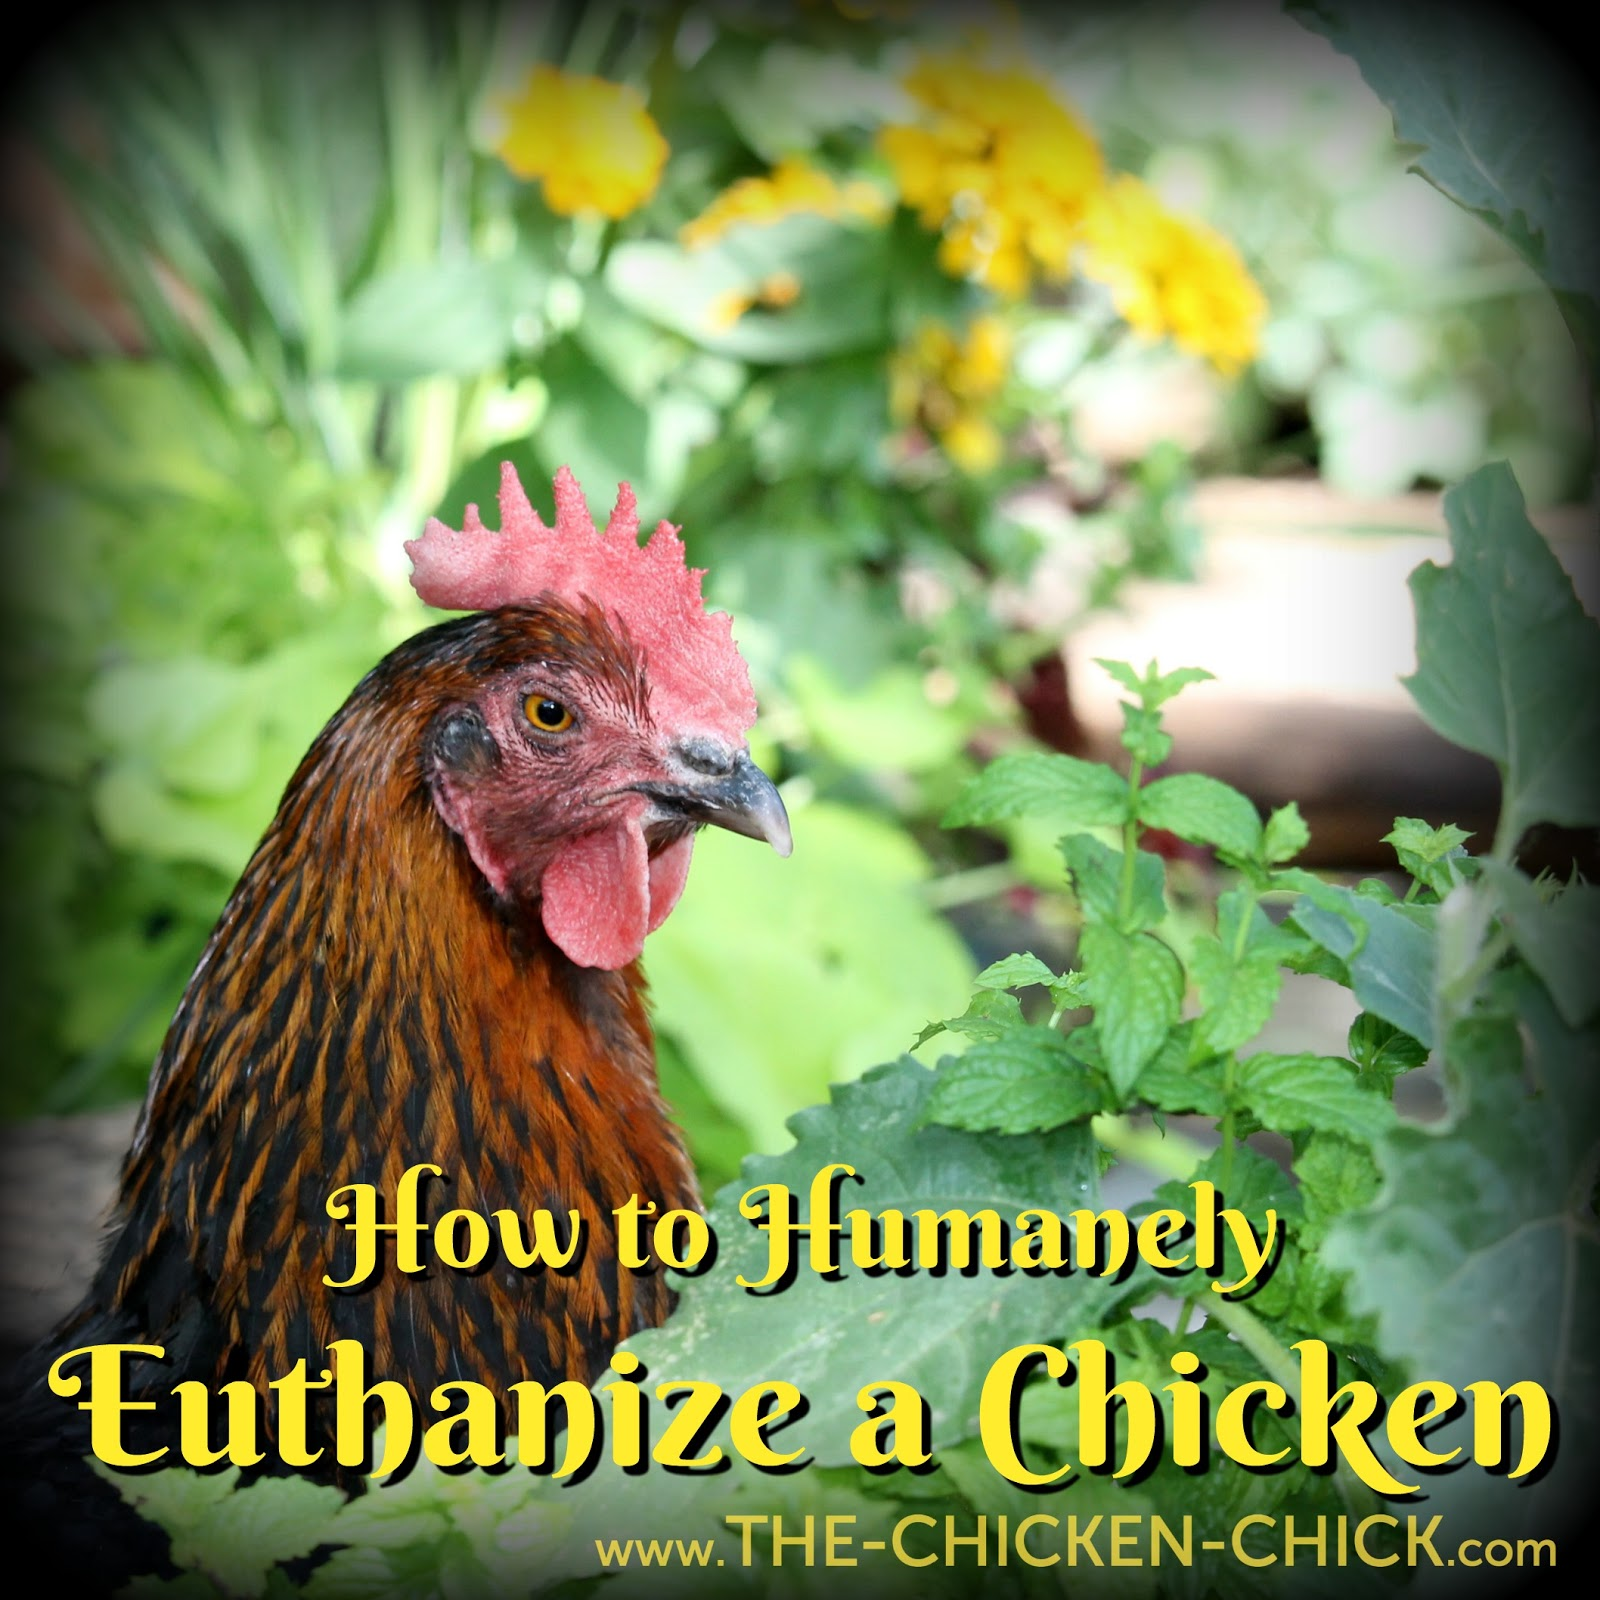 the chicken how to humanely euthanize a chicken by dr